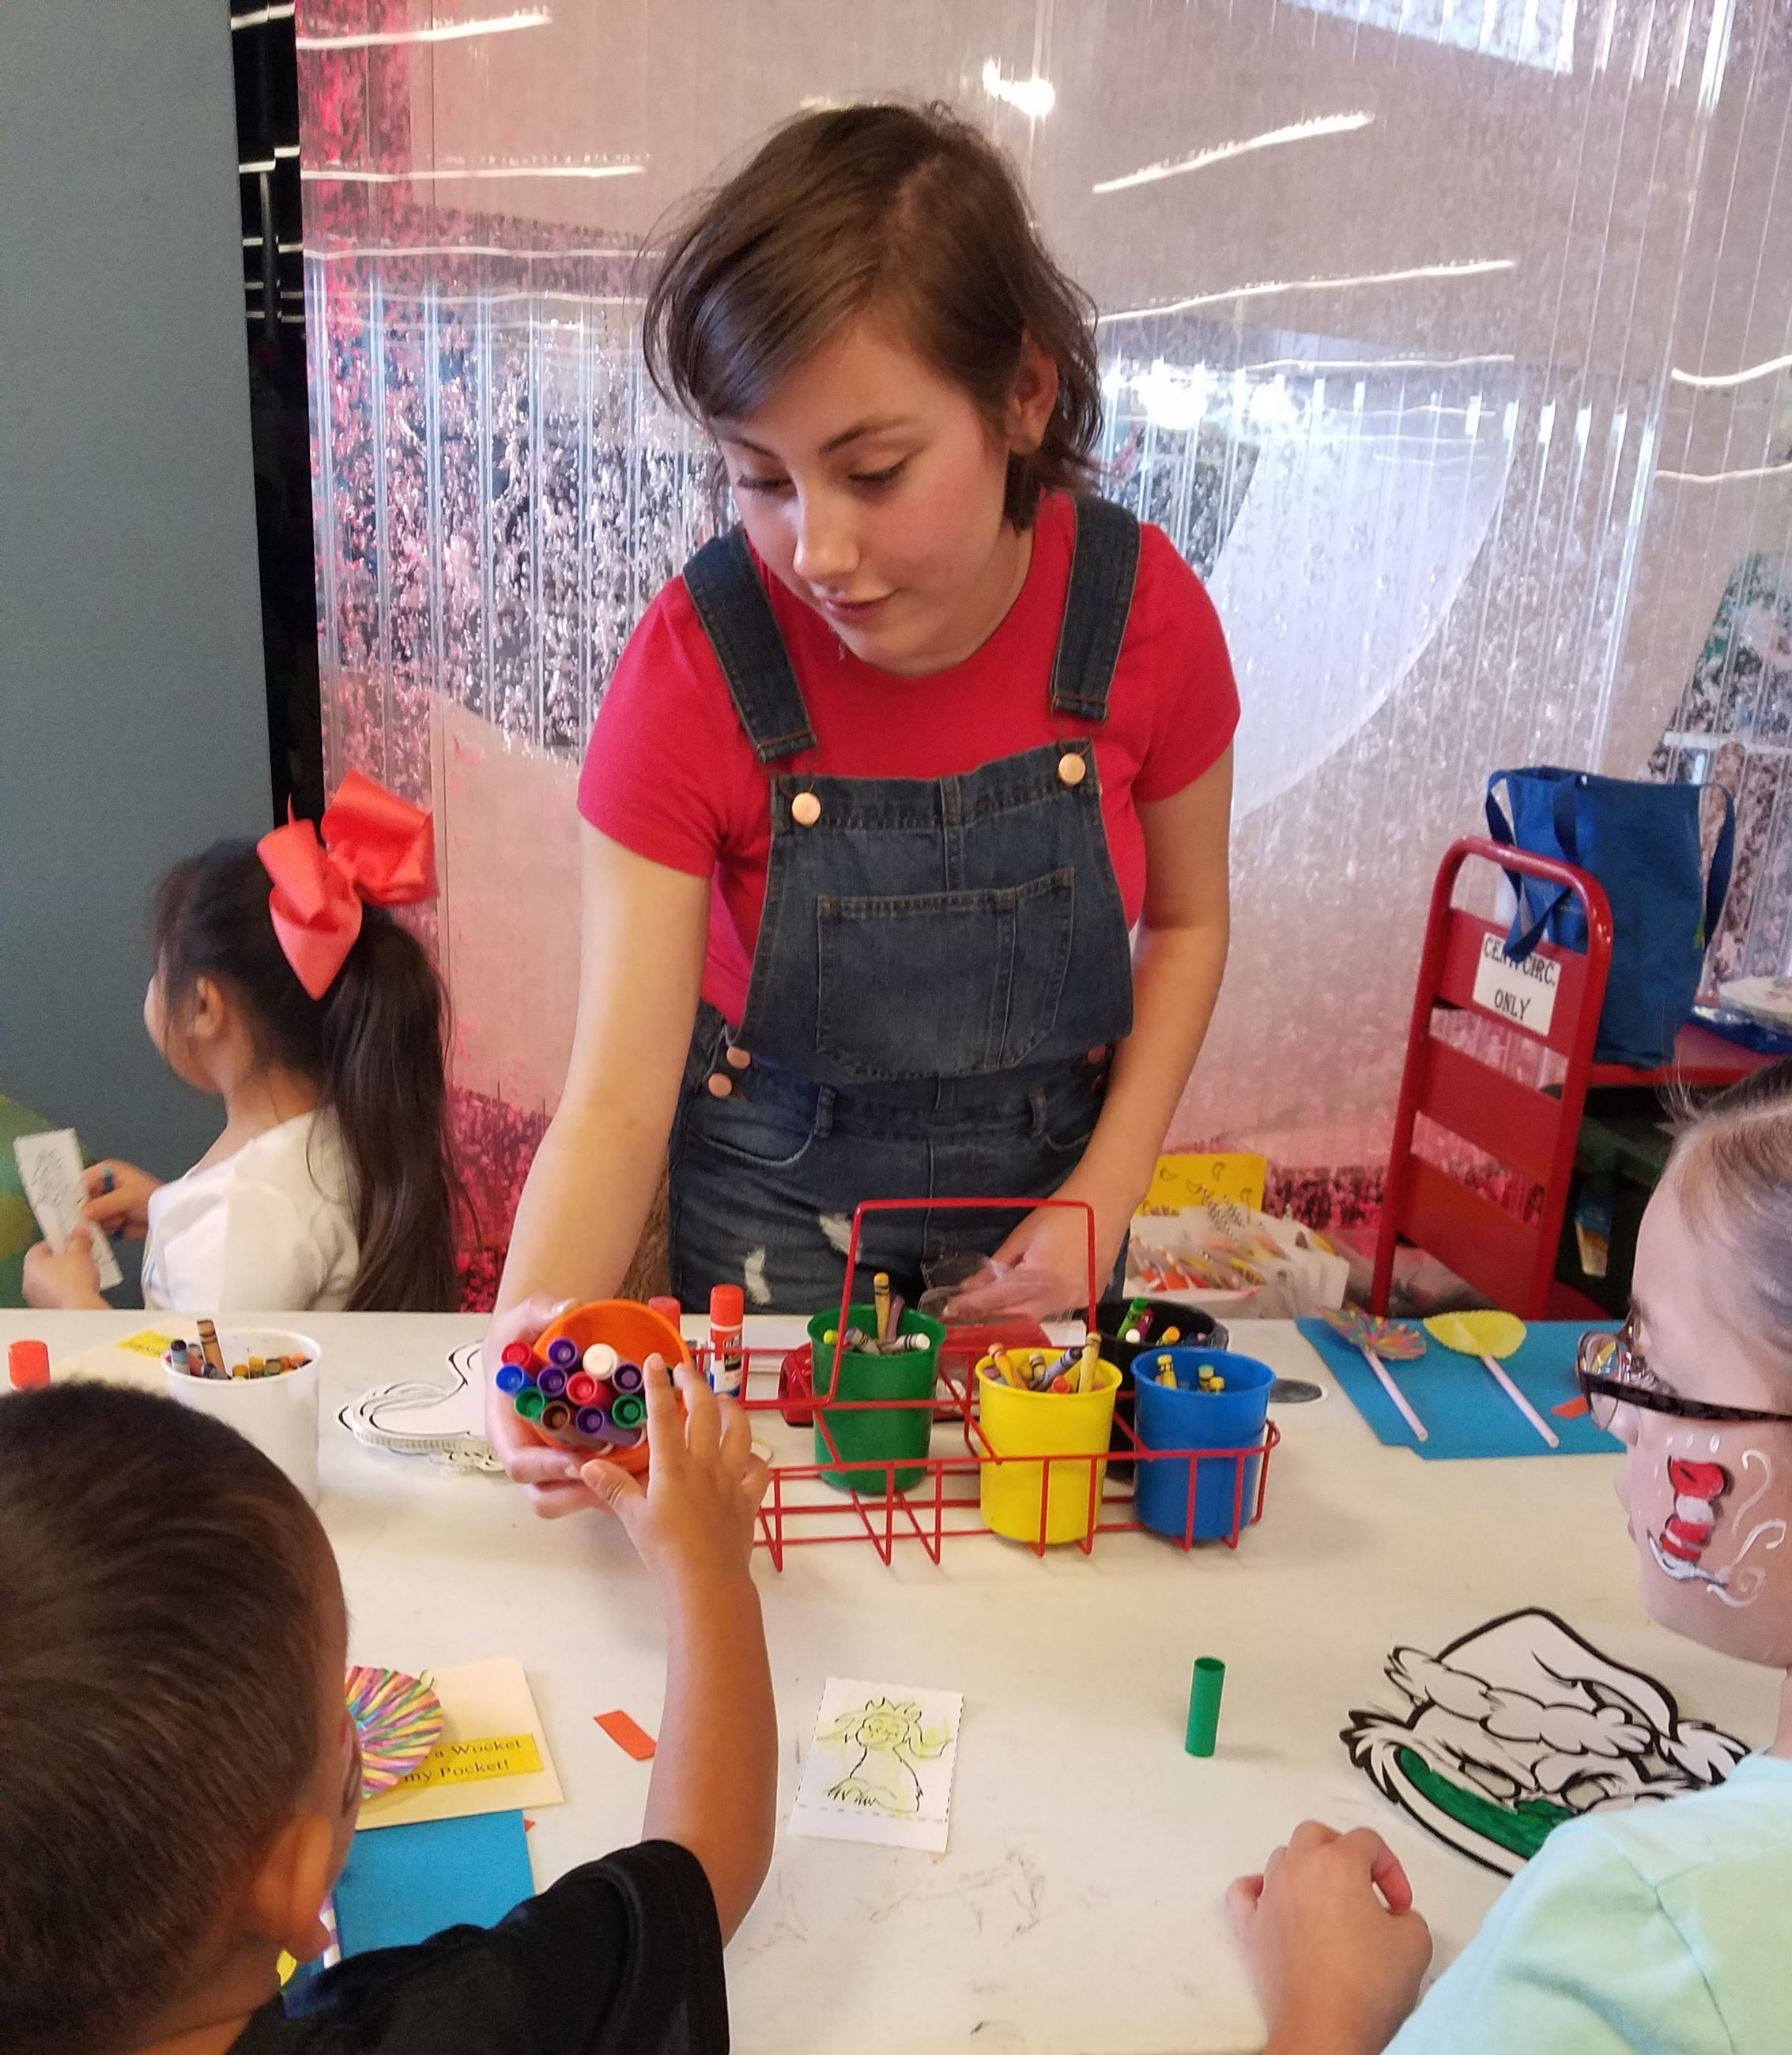 Teen girl helping children at craft table